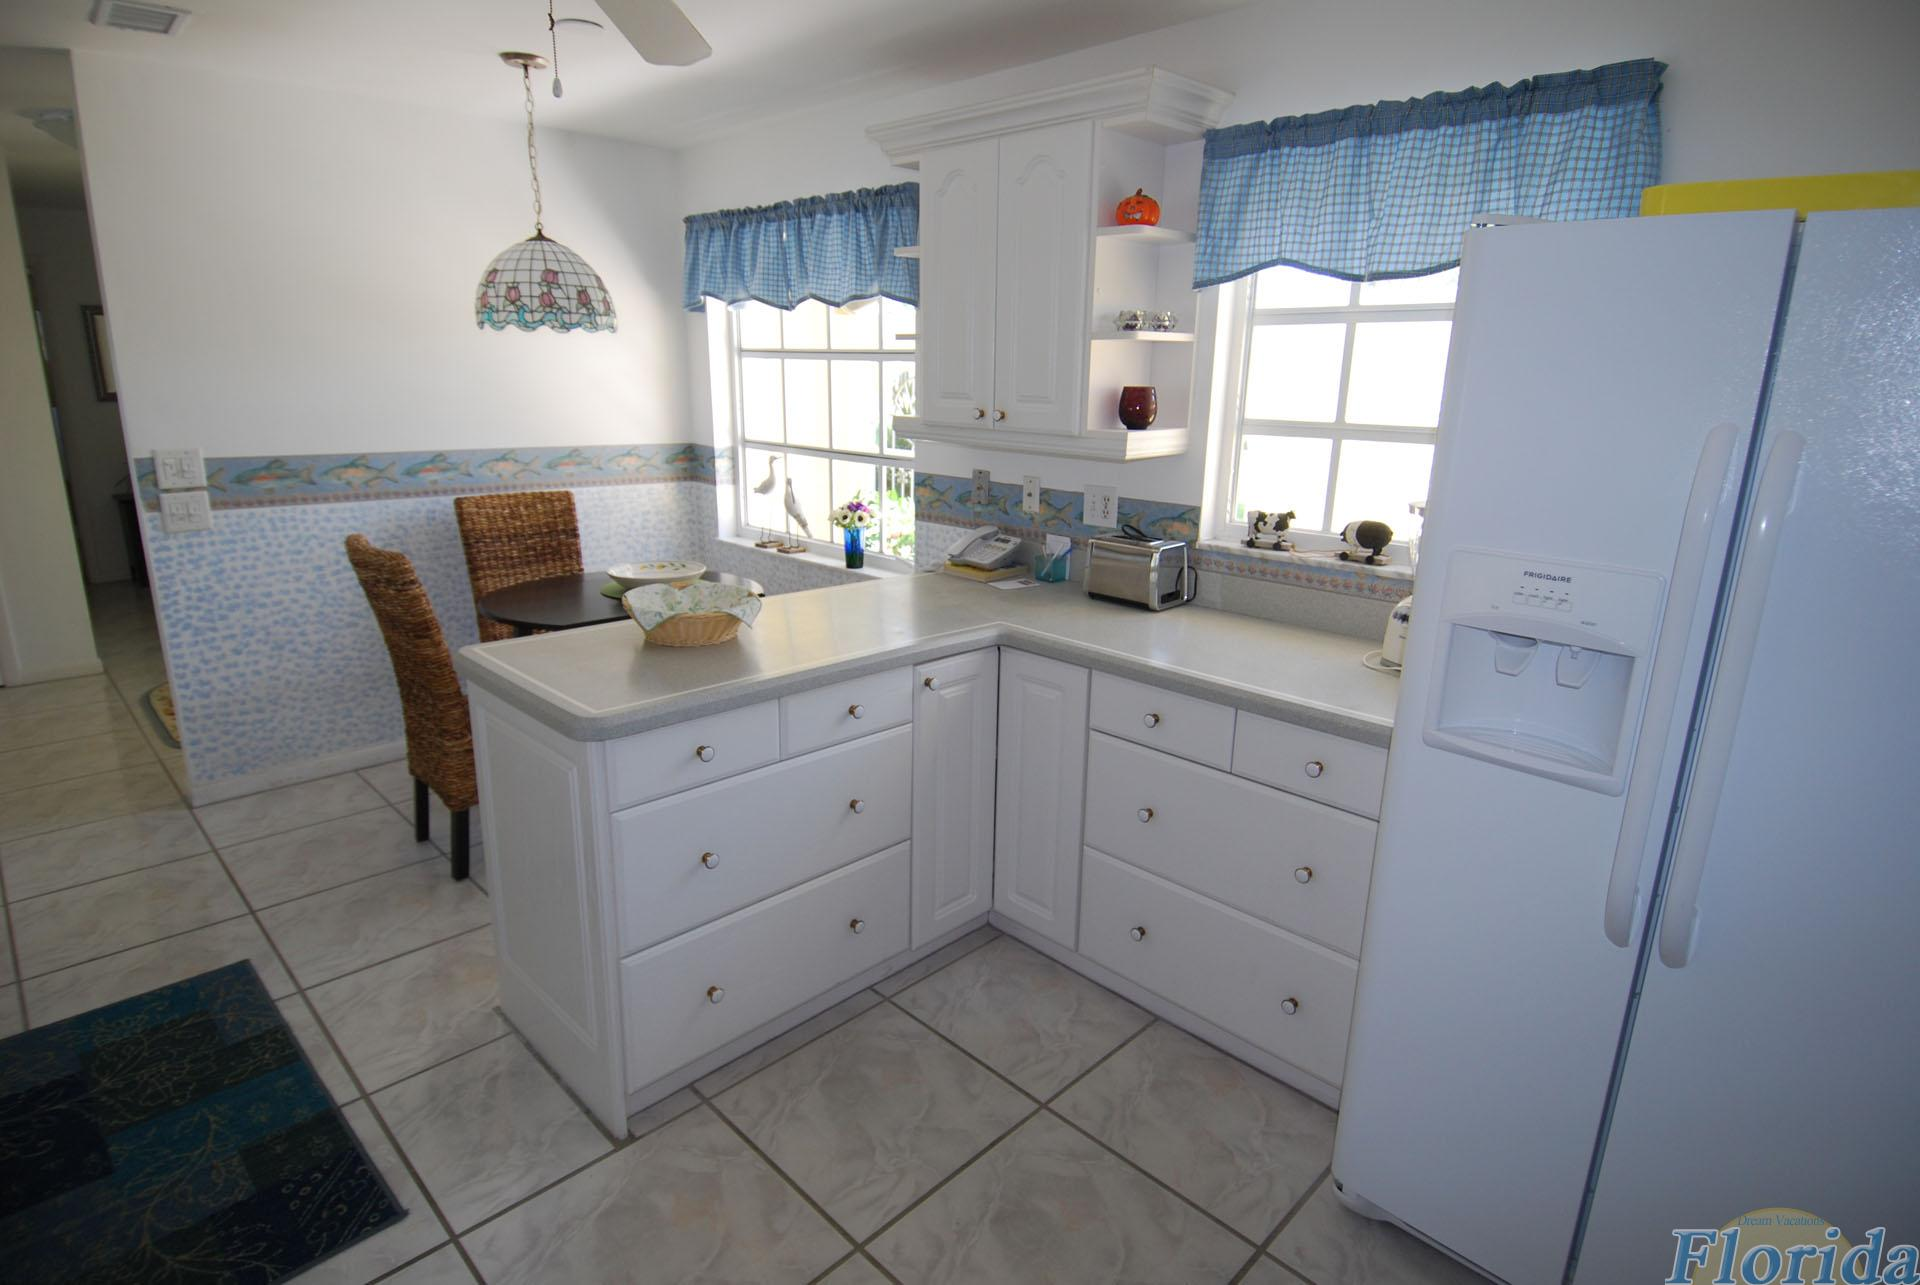 The kitchen was completely renovated